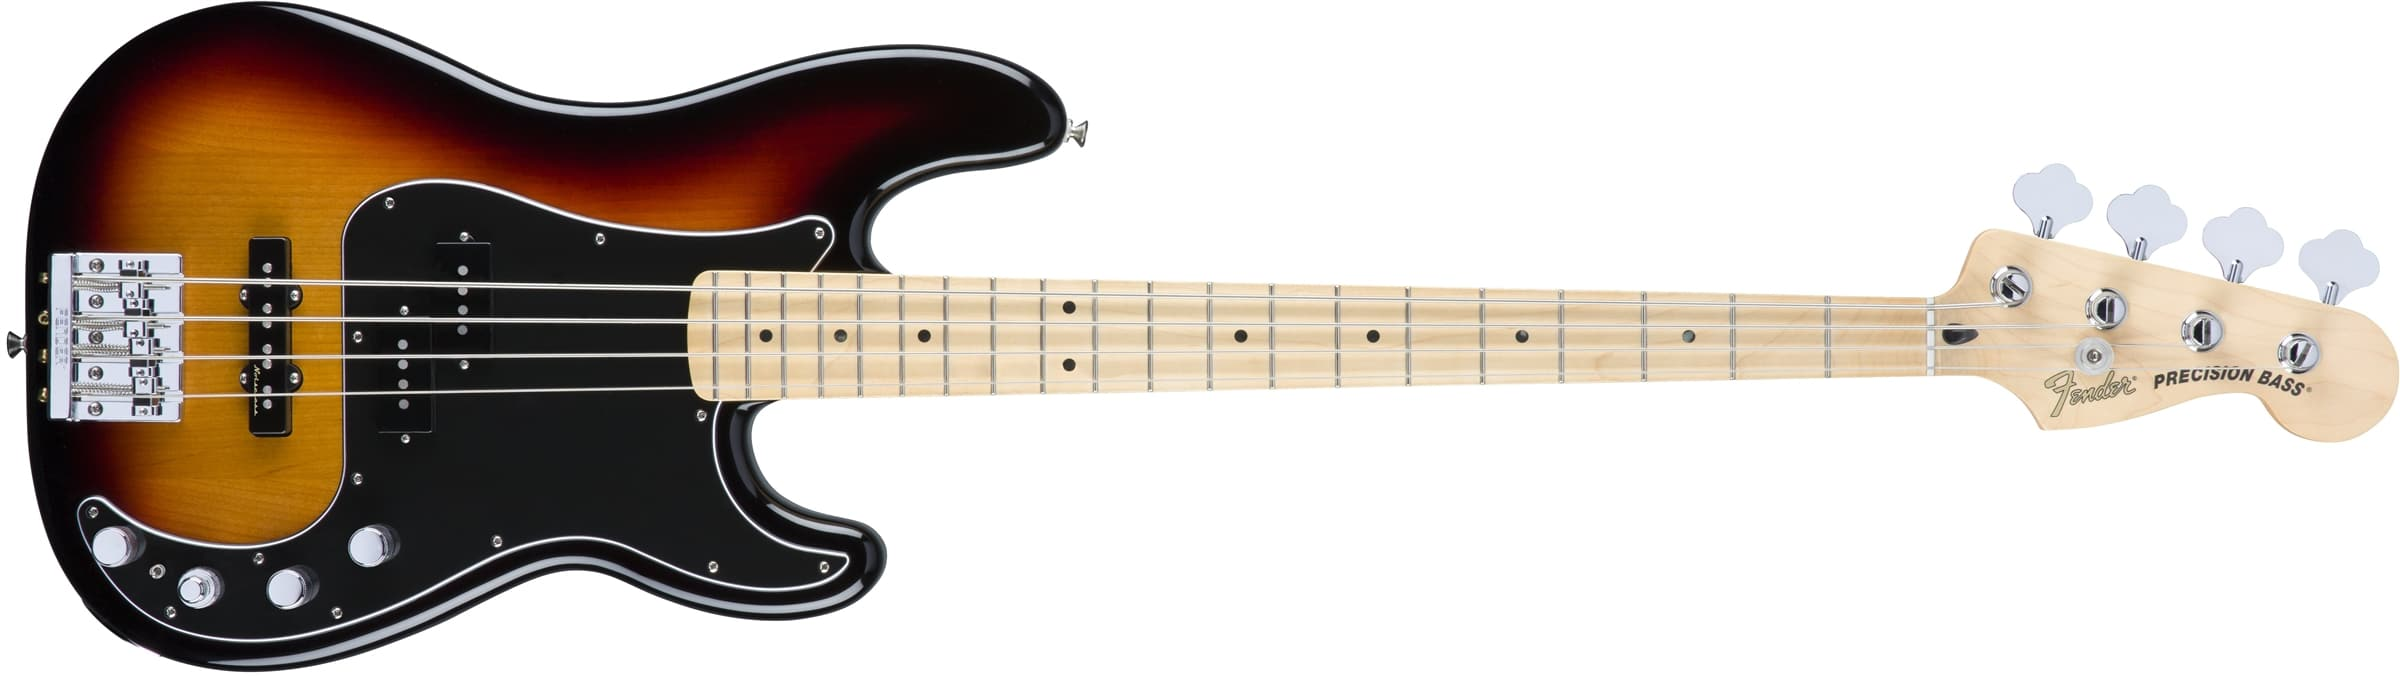 fender deluxe active precision bass review american songwriter. Black Bedroom Furniture Sets. Home Design Ideas